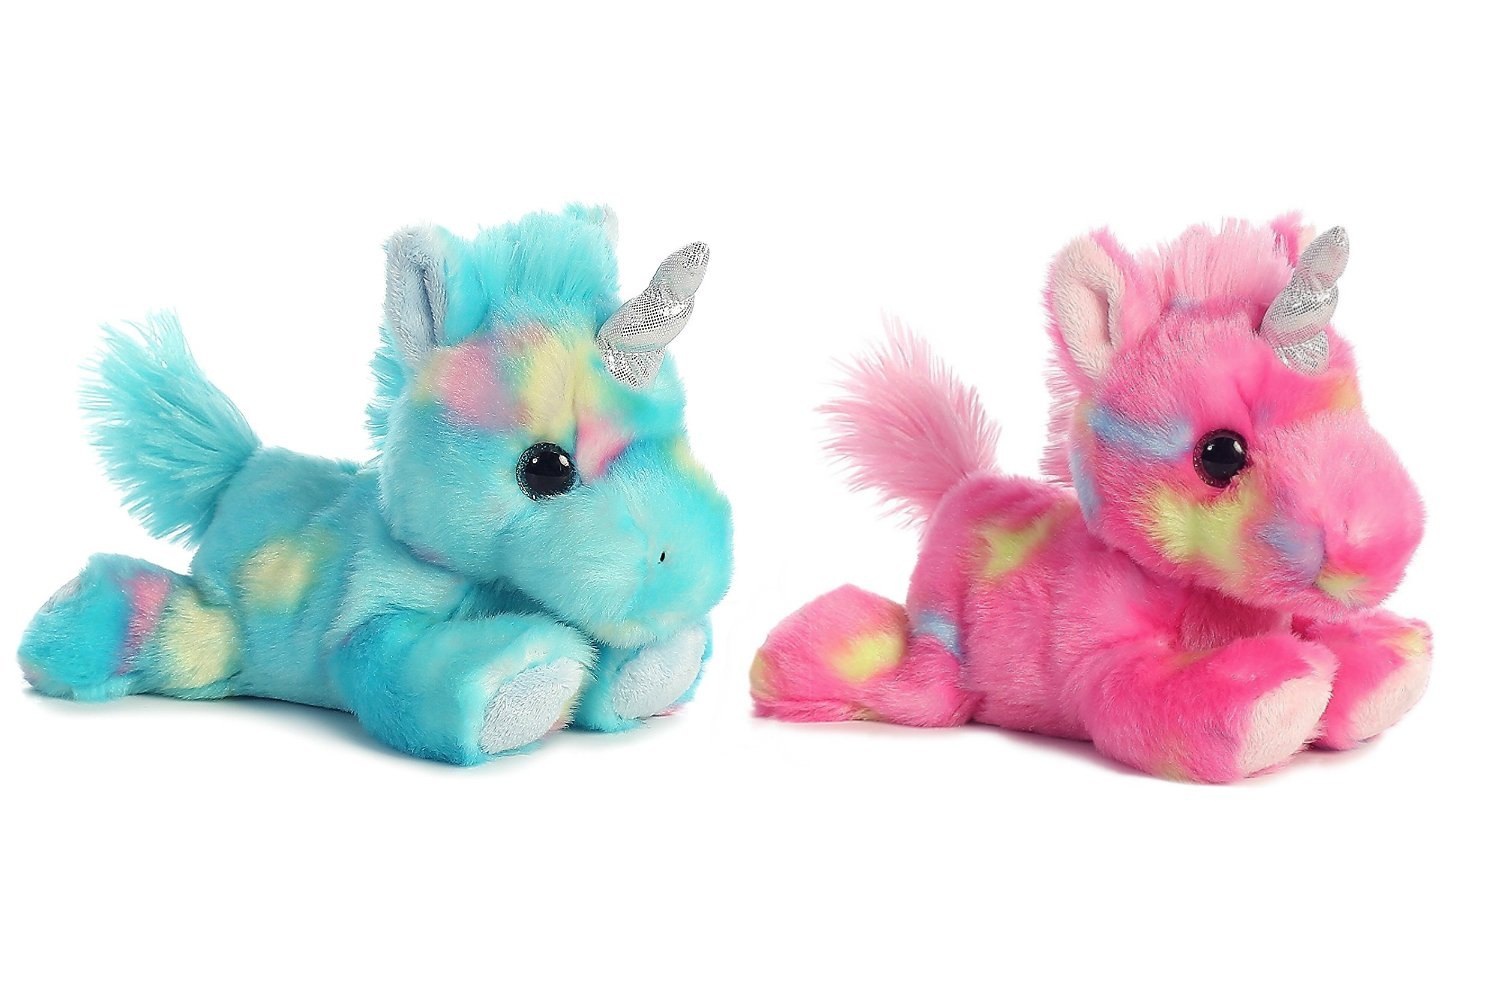 Bundle of 2 Aurora Stuffed Beanbag Animals - Blueberry Ripple Unicorn & Jellyroll Unicorn items 16700 & 16701